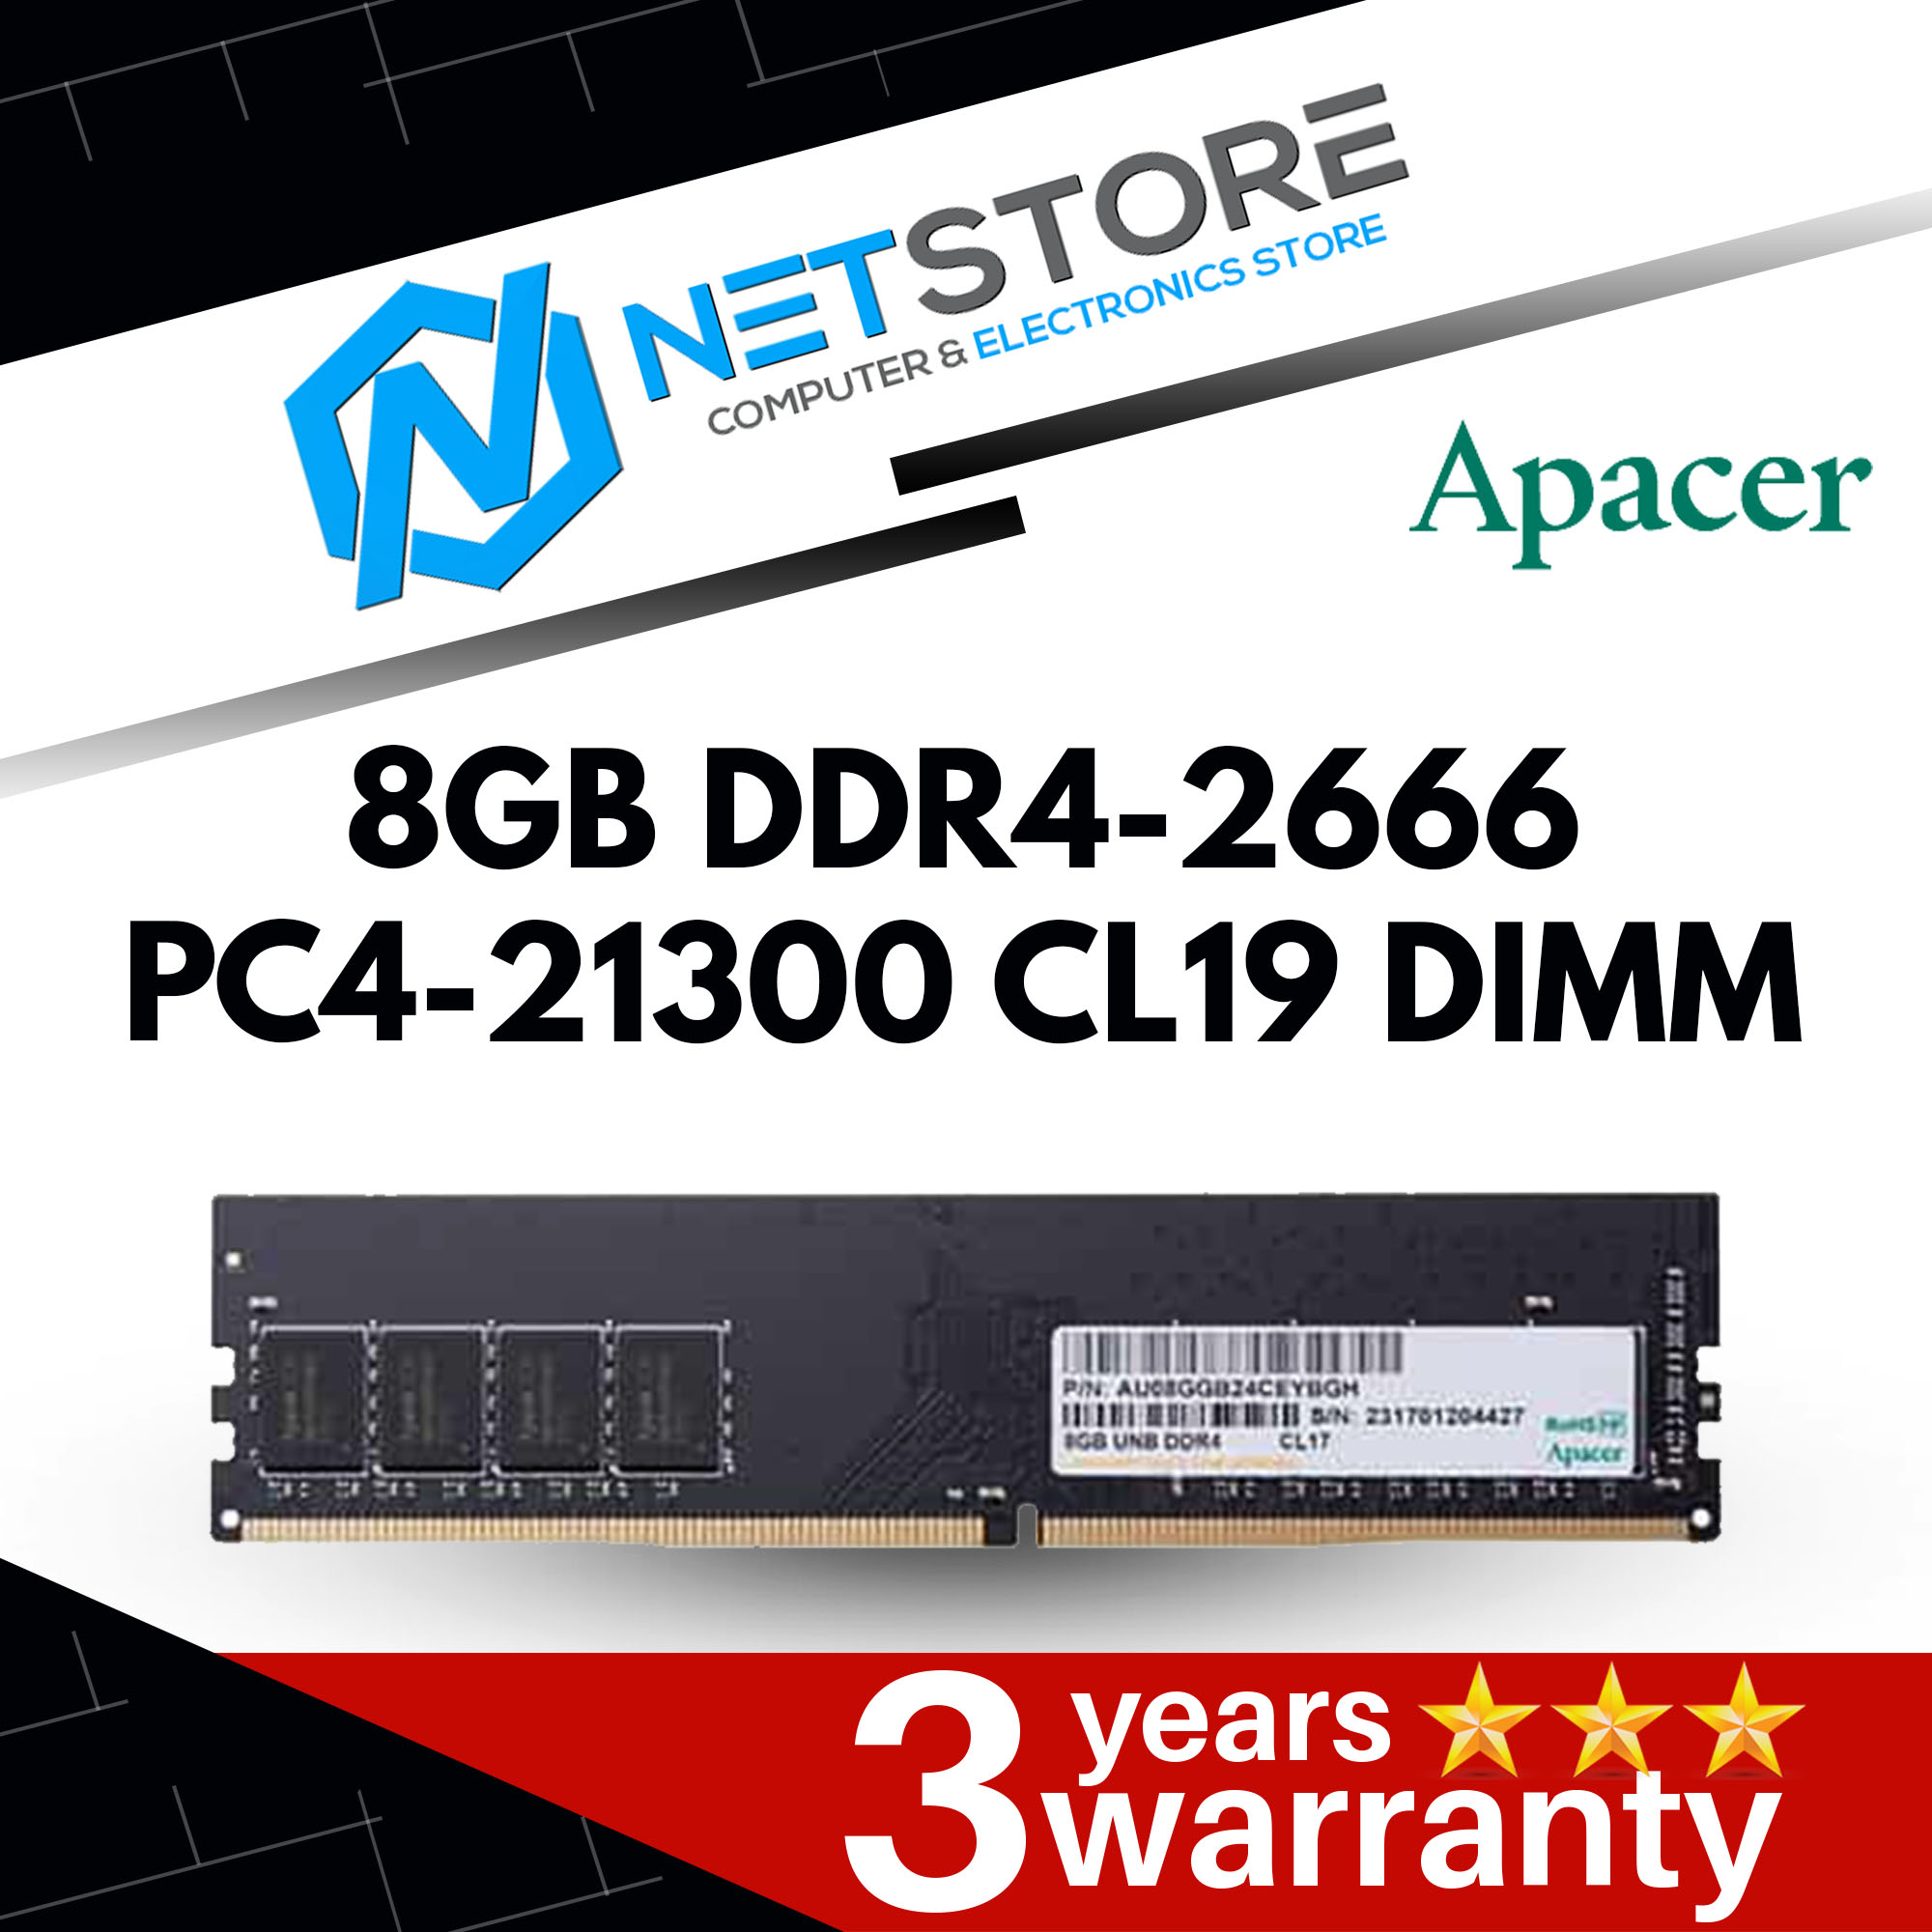 APACER 8GB DDR4-2666 PC4-21300 CL19 DIMM Desktop RAM Memory